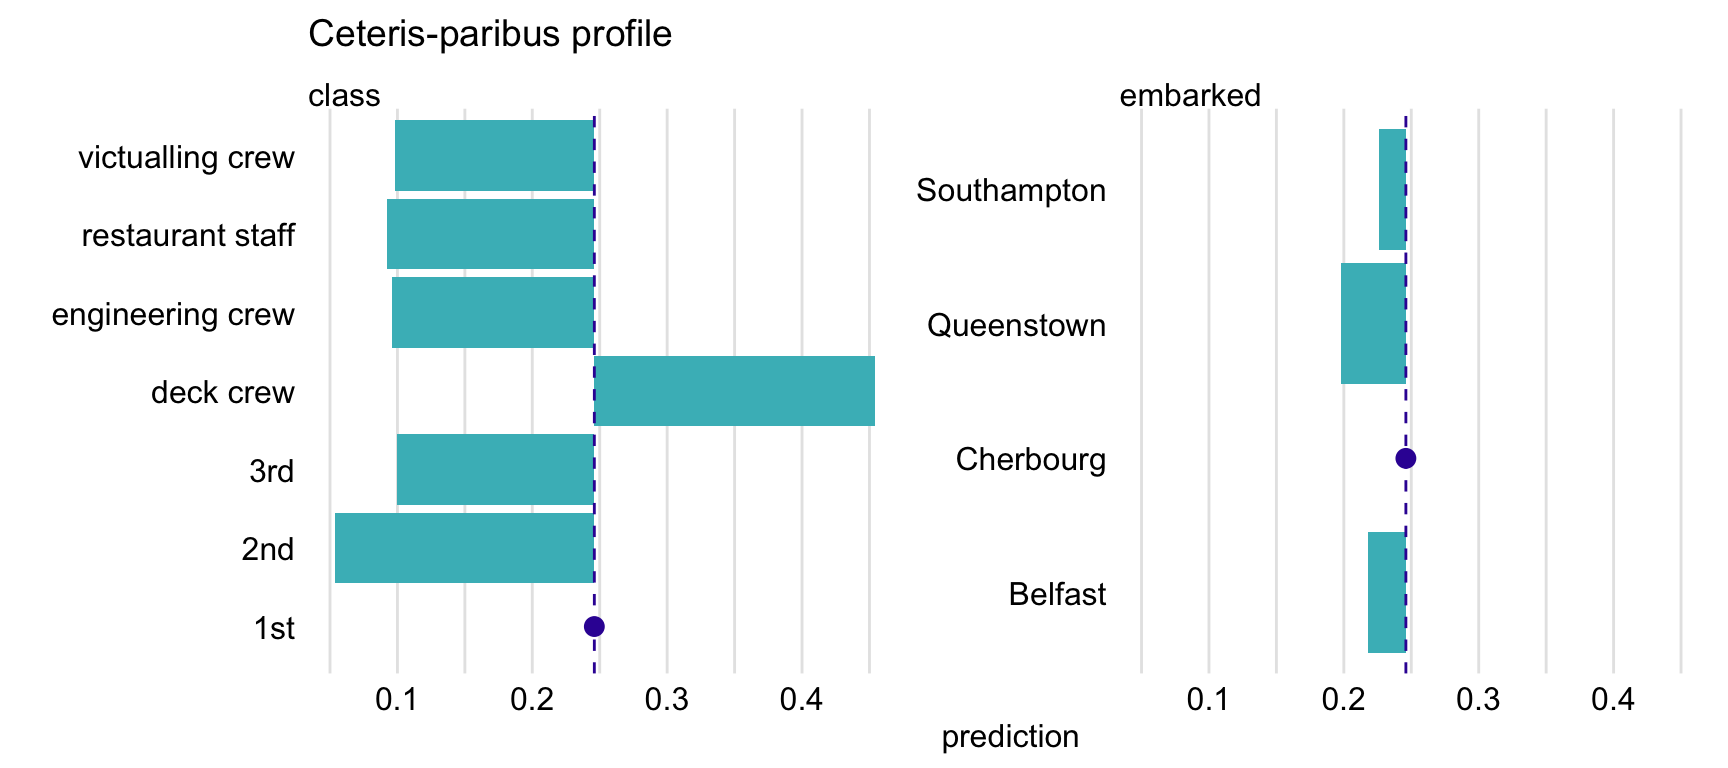 Ceteris-paribus profiles for variables class and embarked and the titanic_rf random forest model for the Titanic data. Dots indicate the values of the variables and of the prediction for Henry.